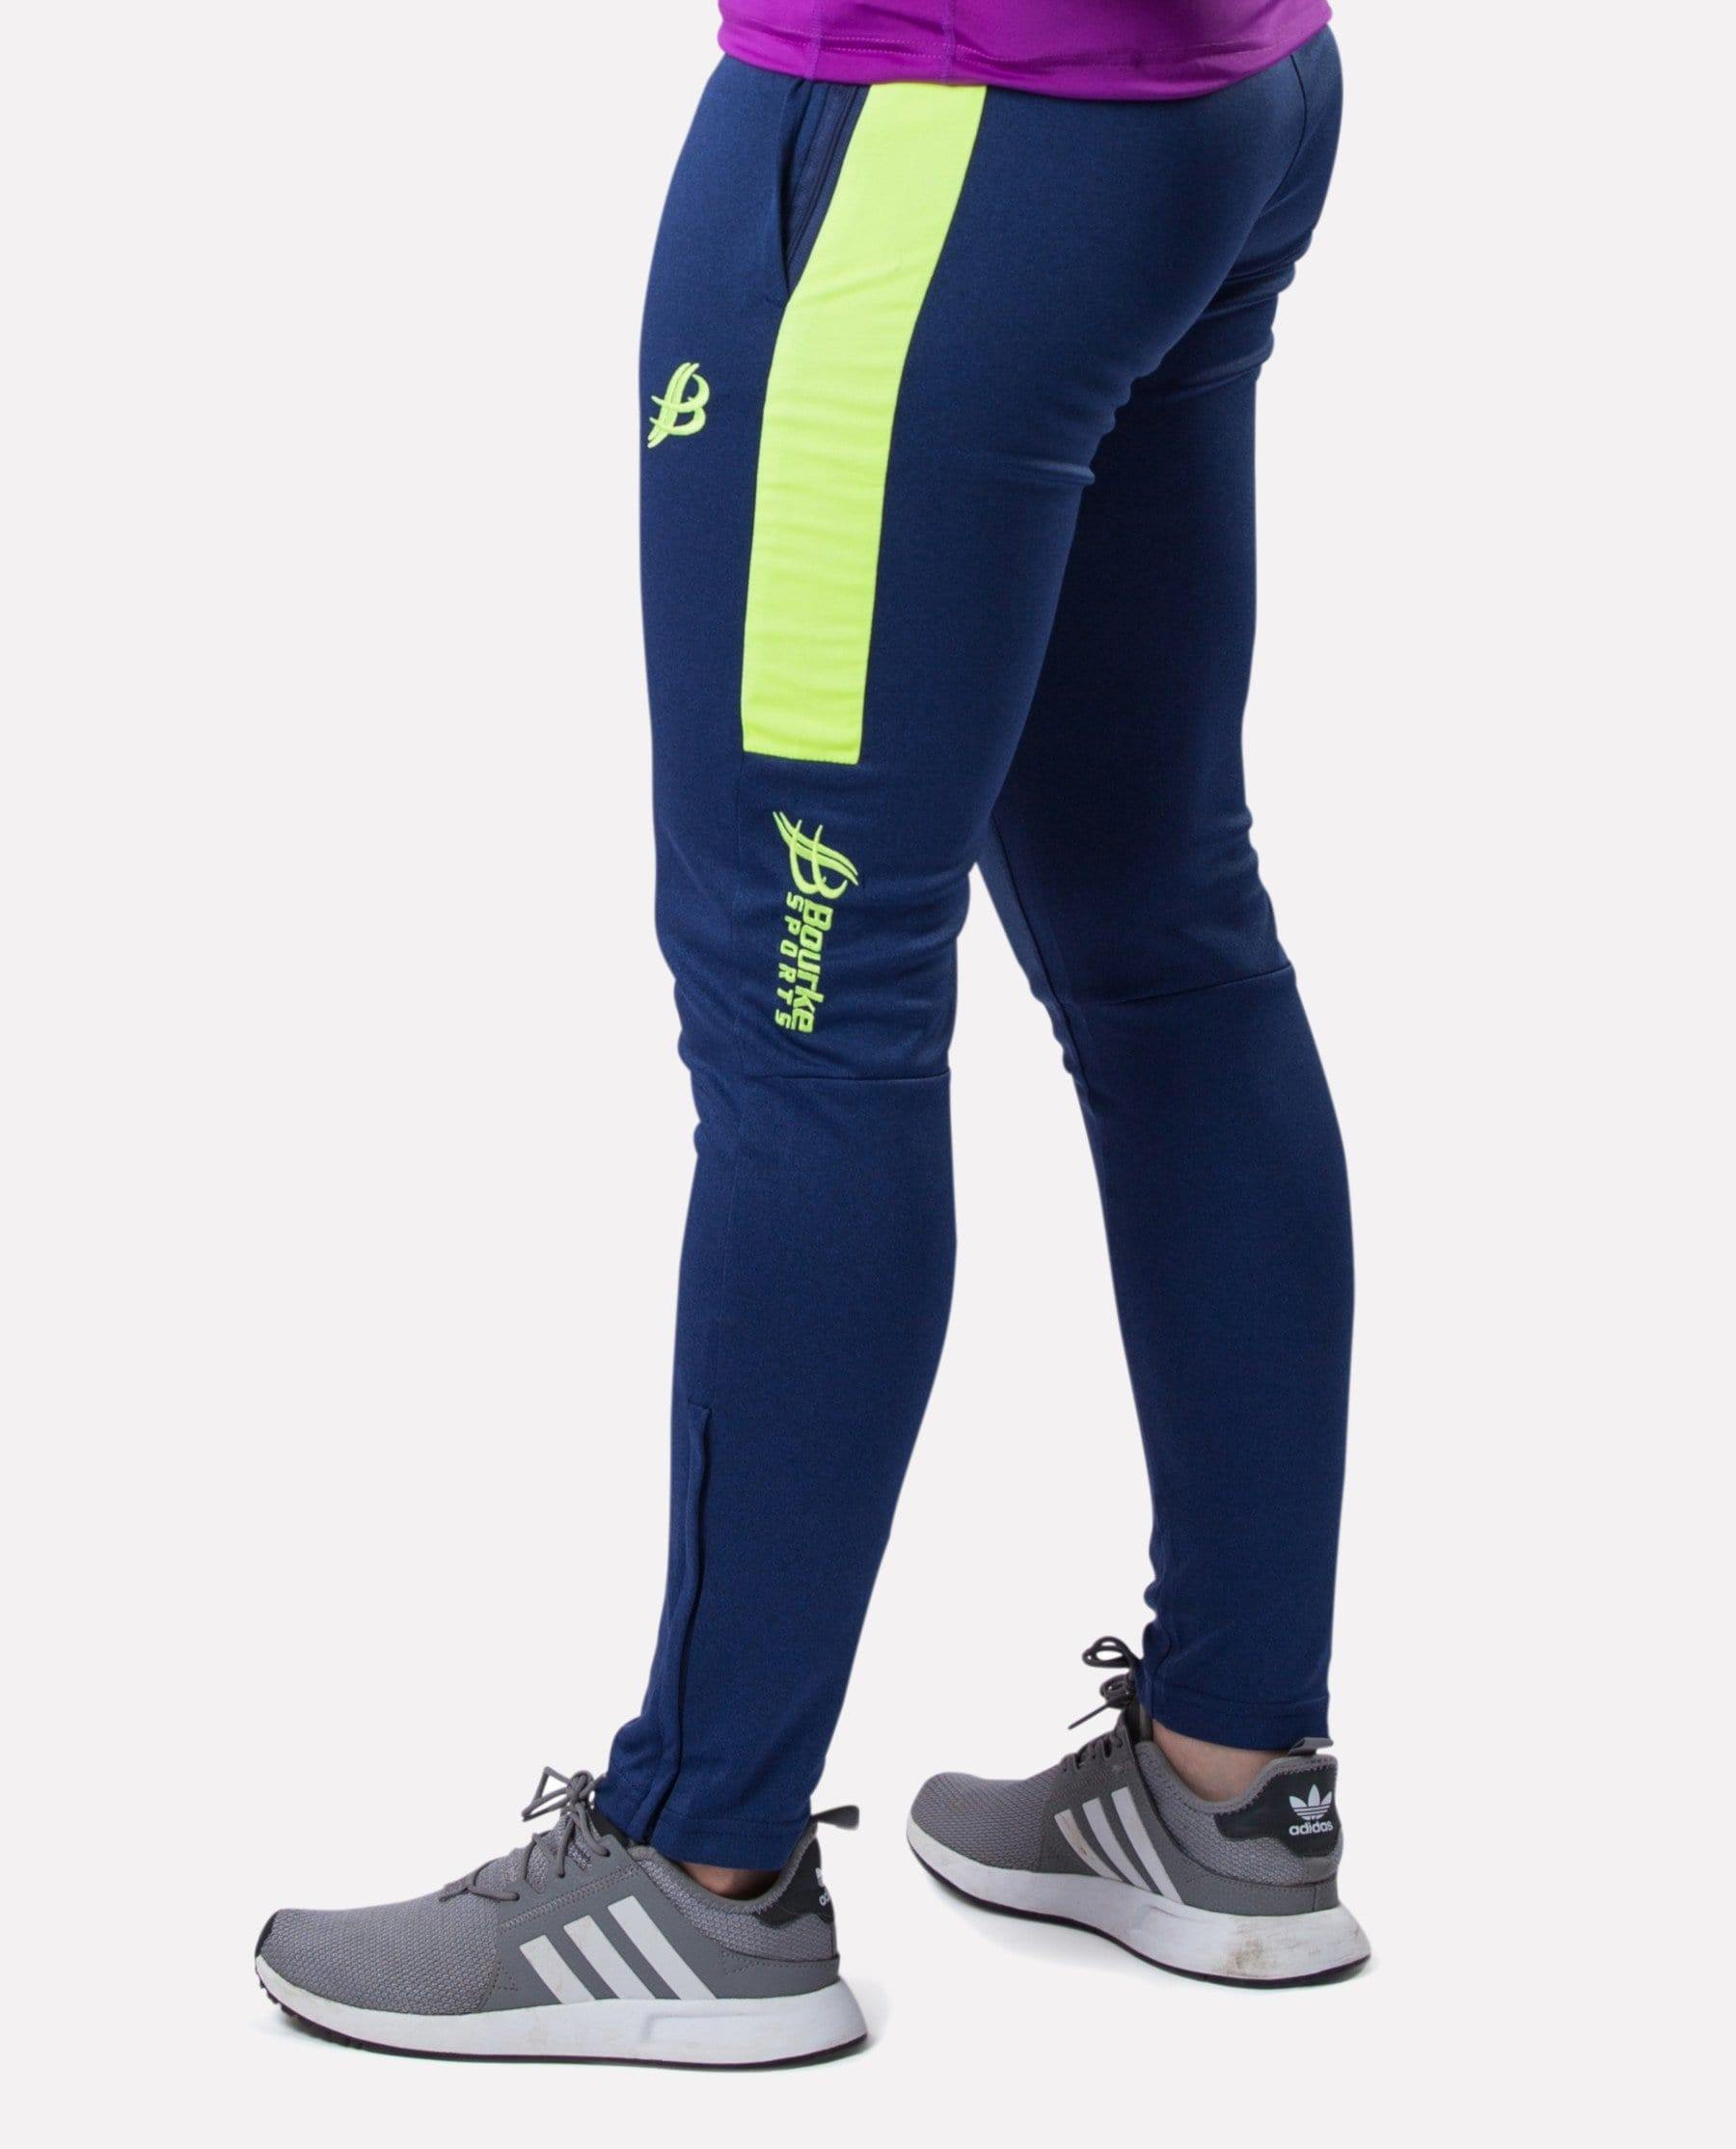 ALPHA Adult Skinny Pants (Navy/Luminous) - Bourke Sports Limited